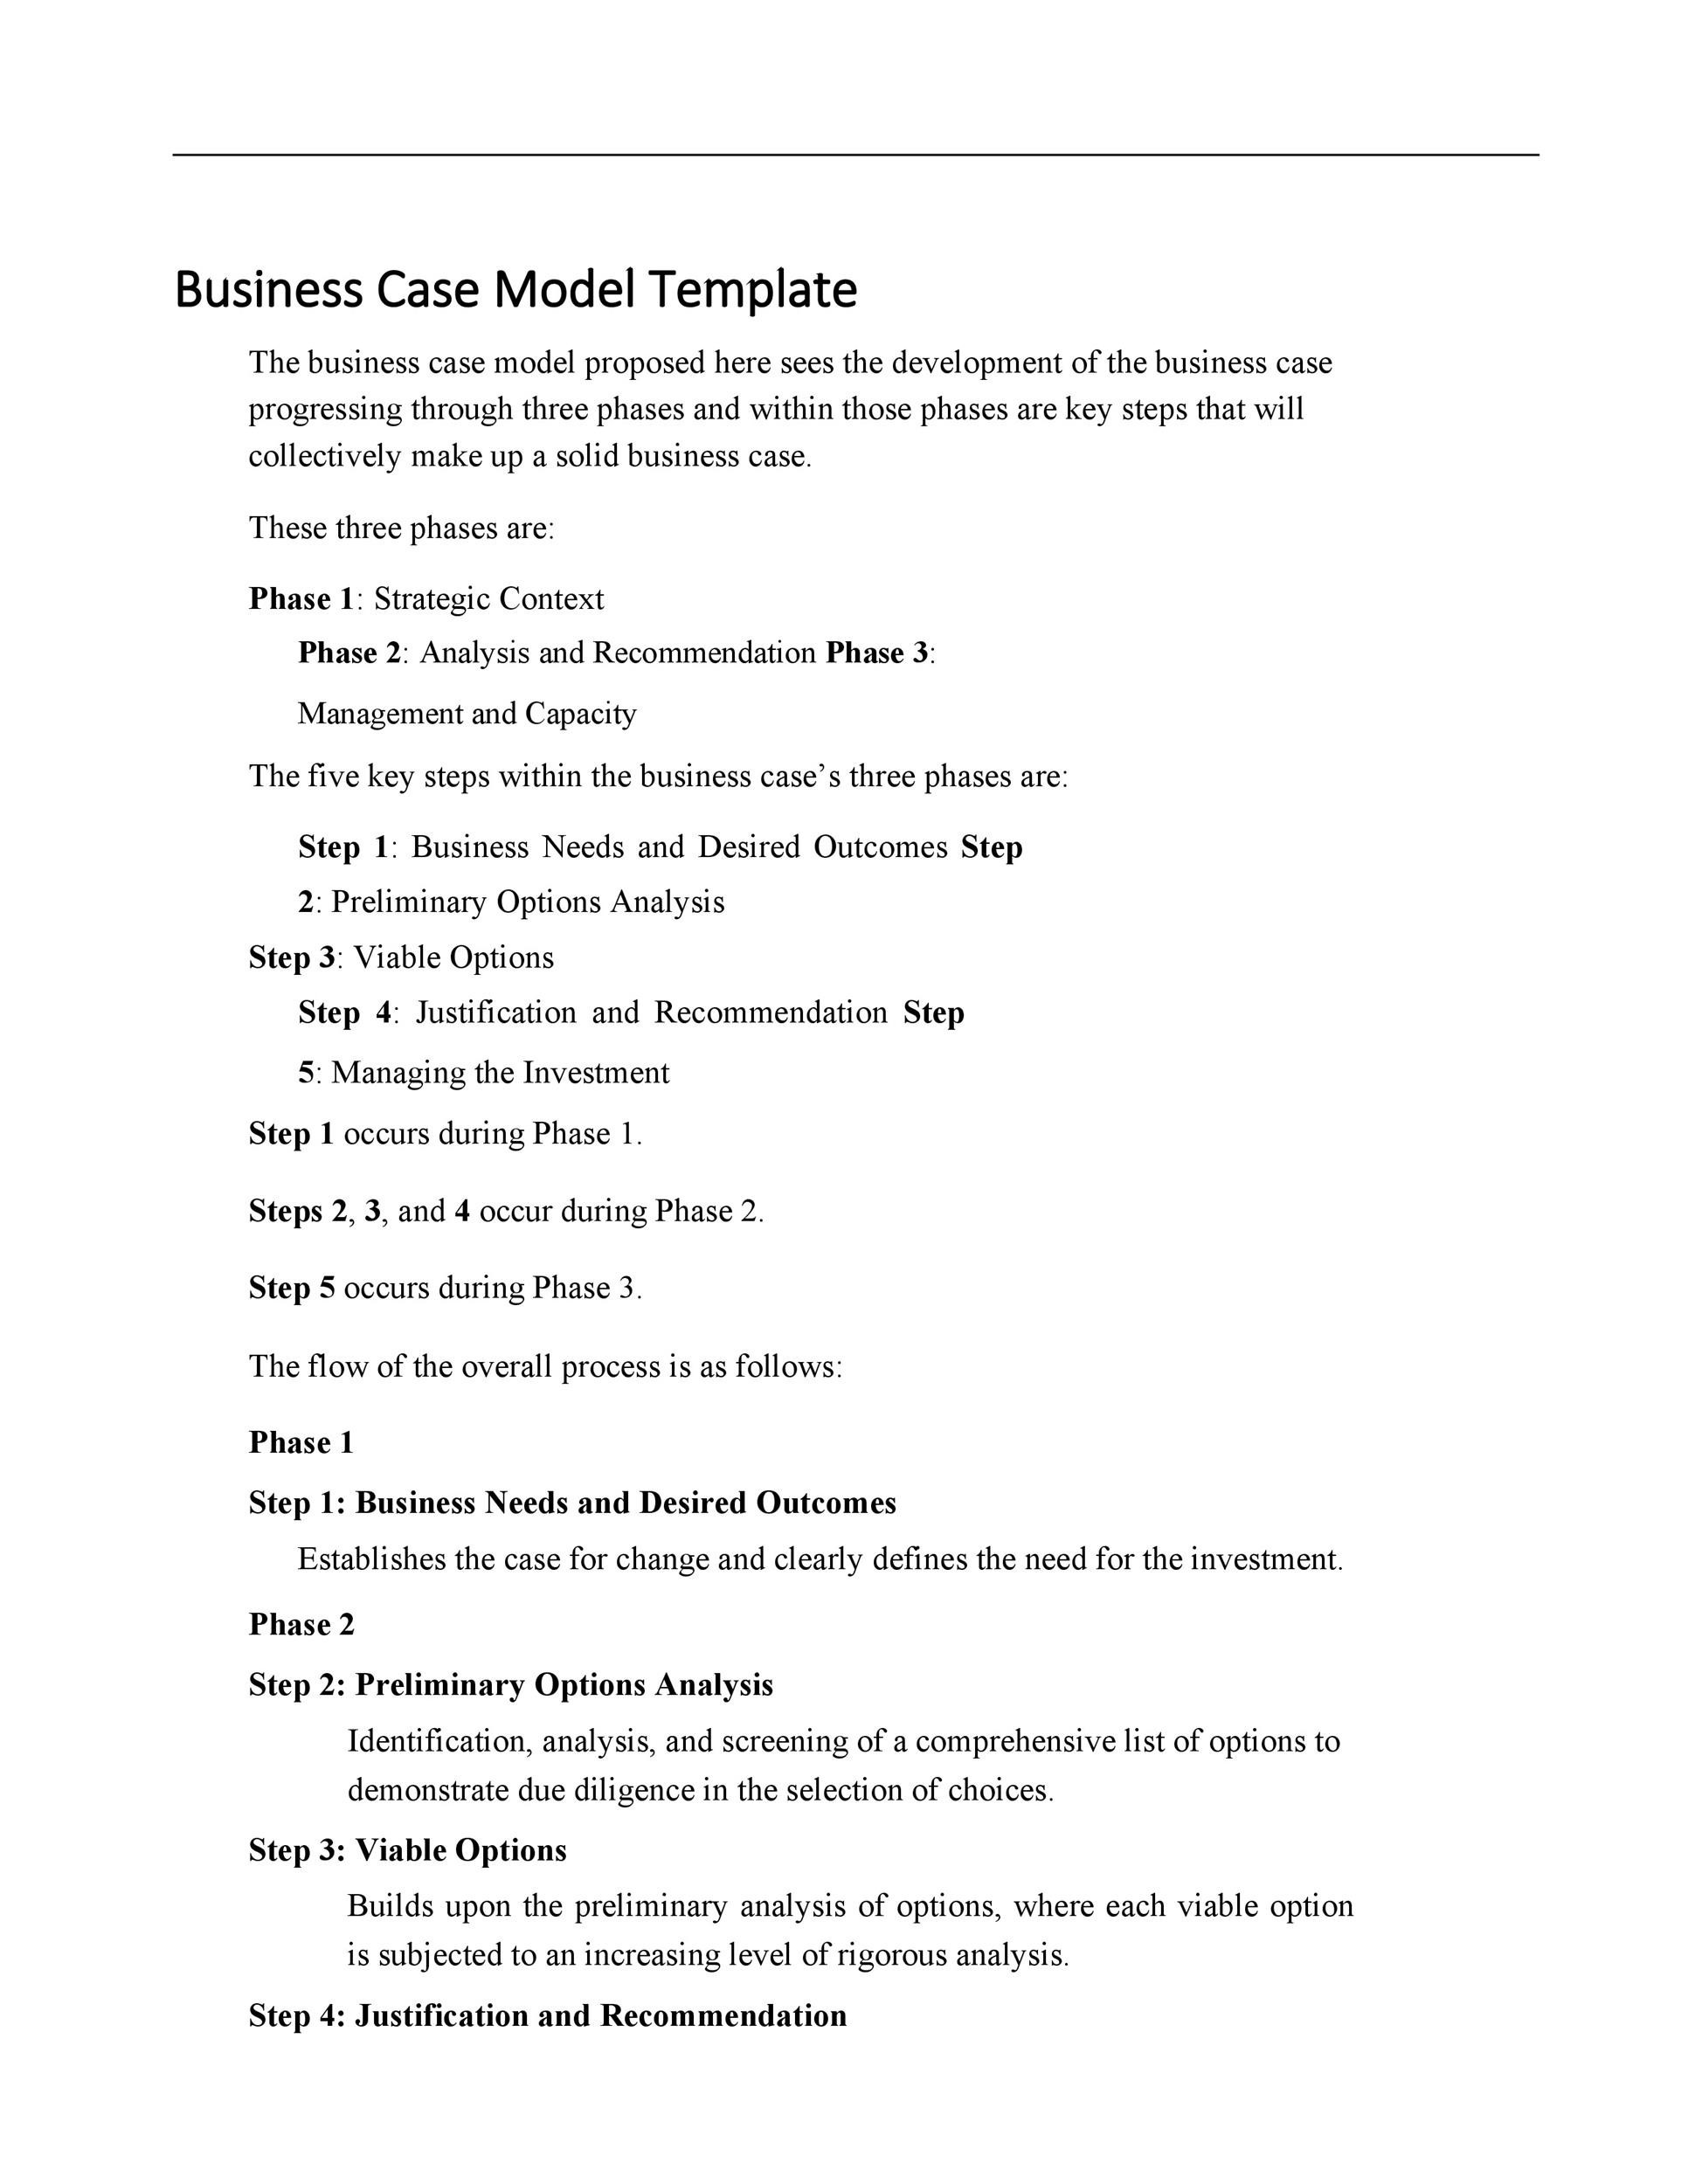 30 Simple Business Case Templates Examples ᐅ Templatelab